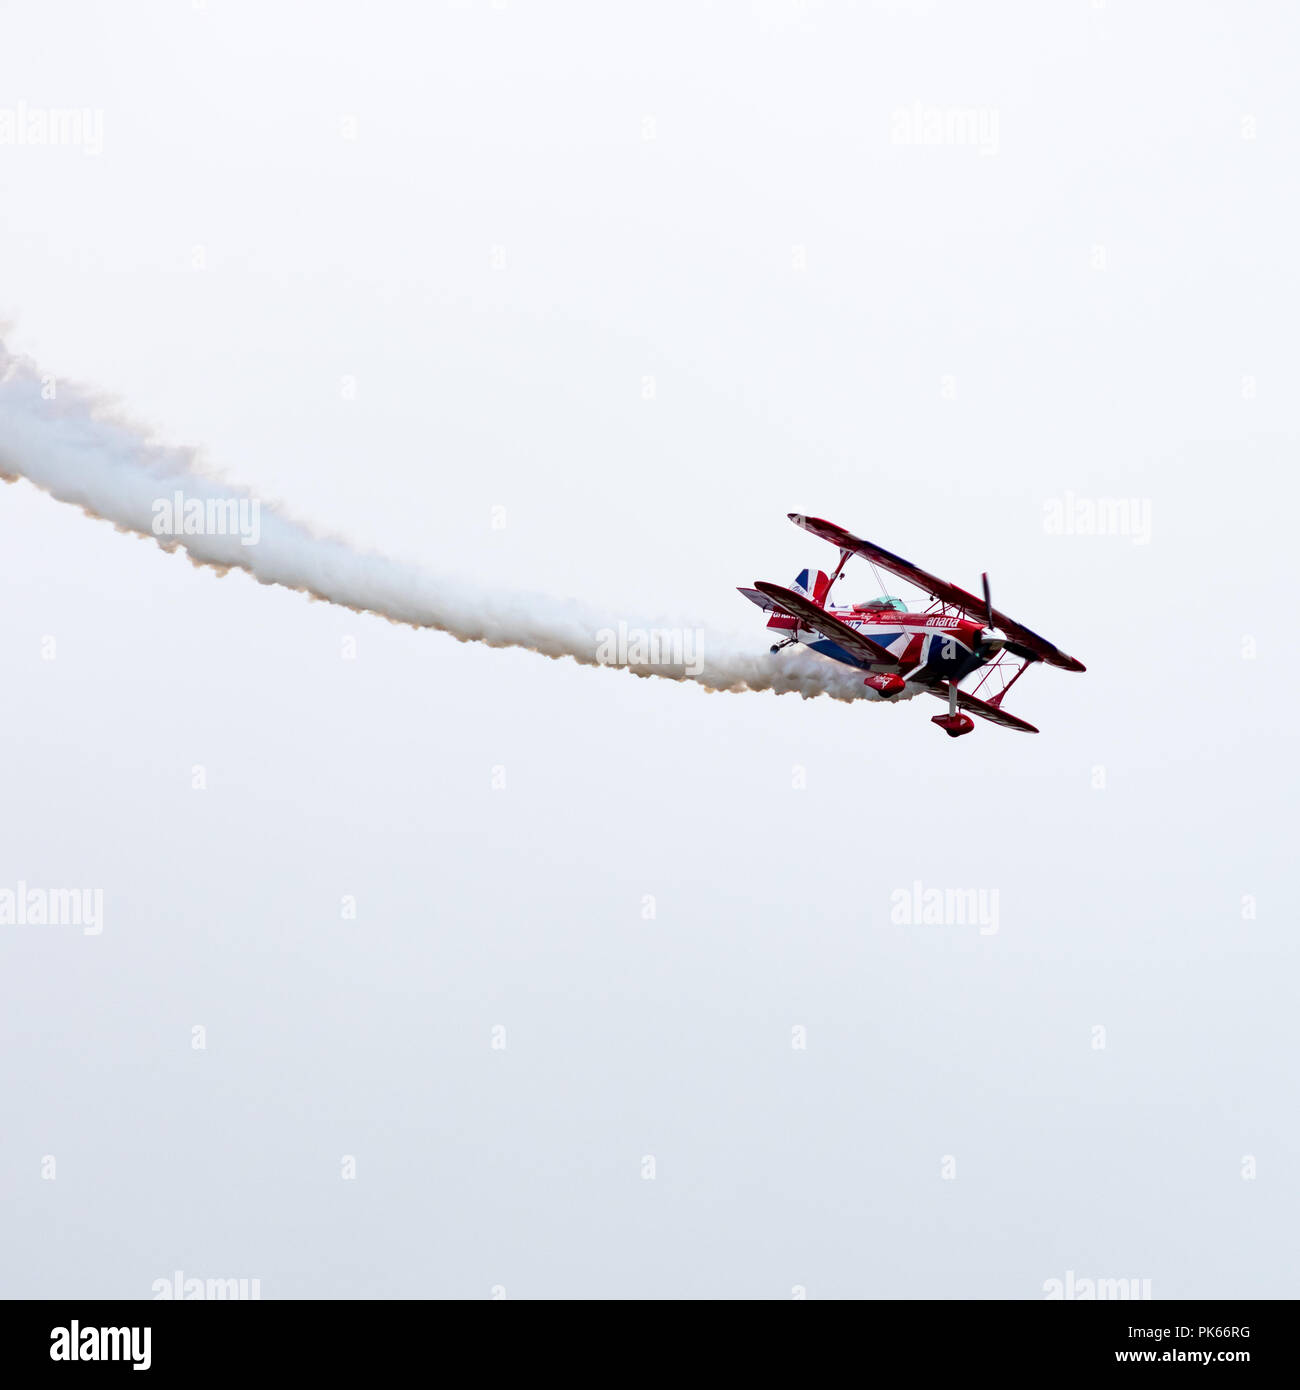 A highly modified Pitts Special S2S Biplane performing an aerobatics routine - Stock Image